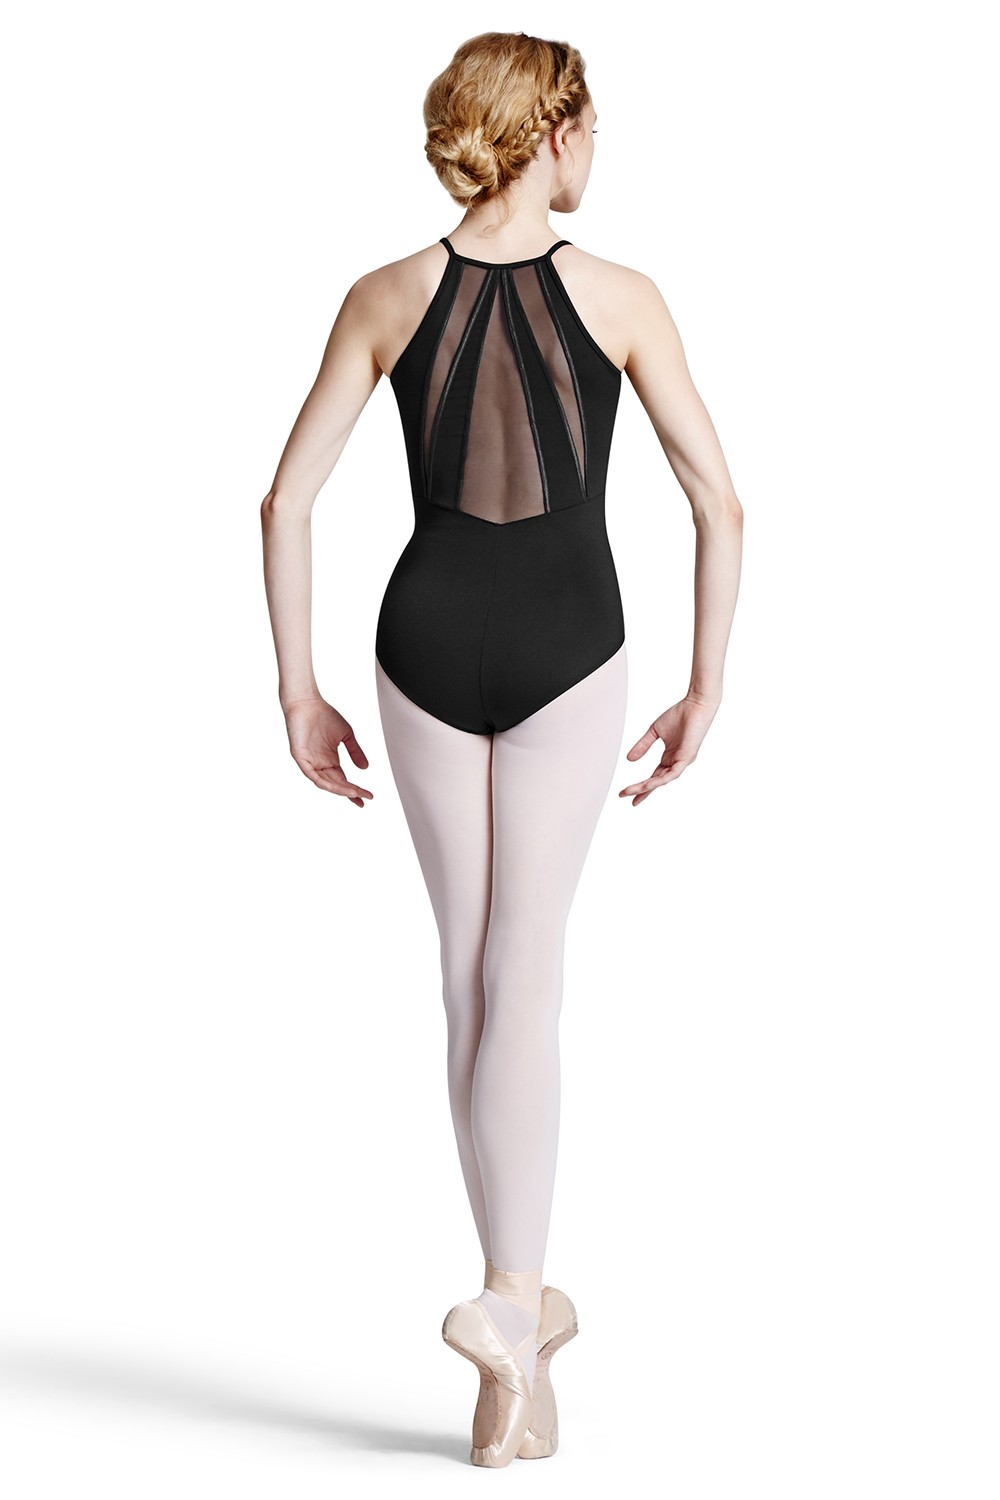 Jubilee Women's Dance Leotards